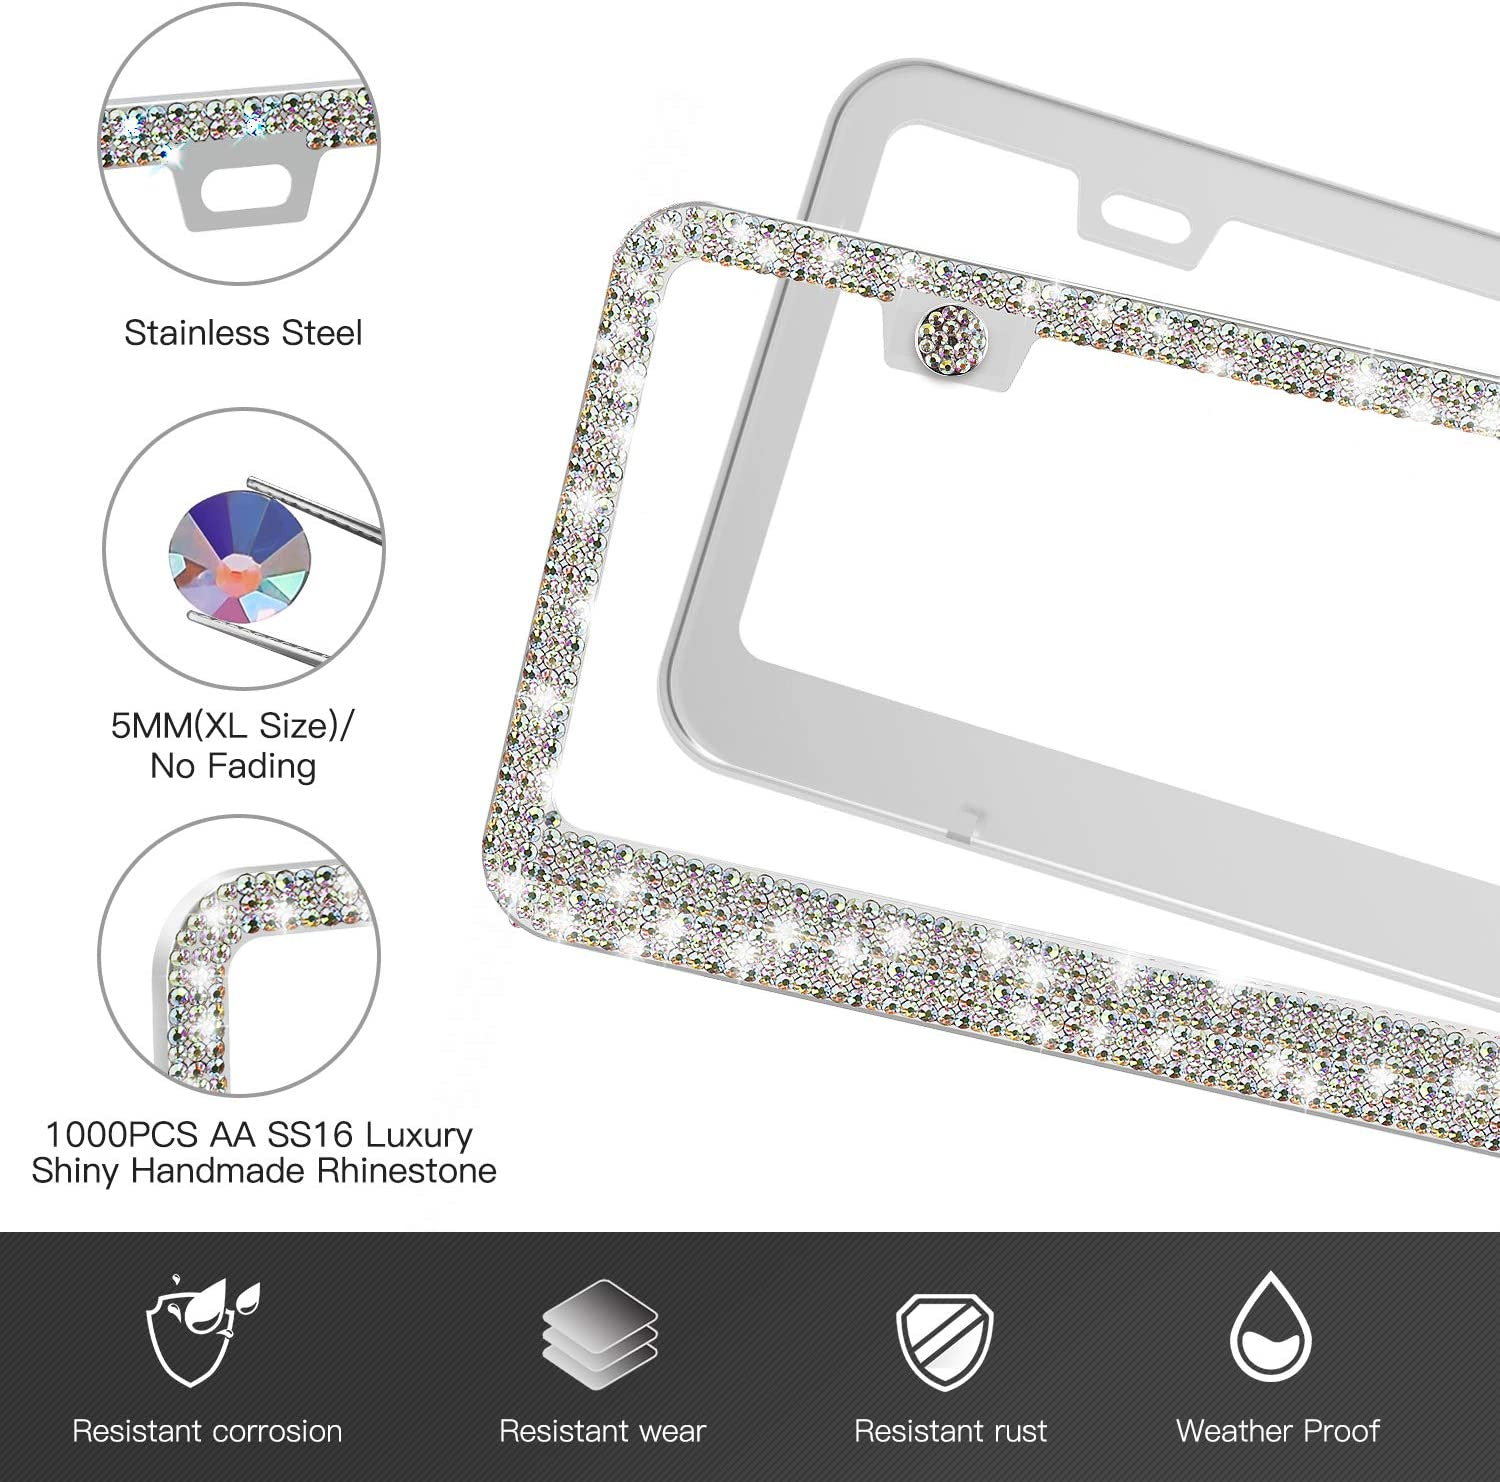 Bling Rhinestone License Plate Frame for Women 2PCS Luxury Handmade Multicolor Glitter Diamond License Plate Frames with Screw Caps for Front Back License with Screw Caps and Rhinestone Bling Ring